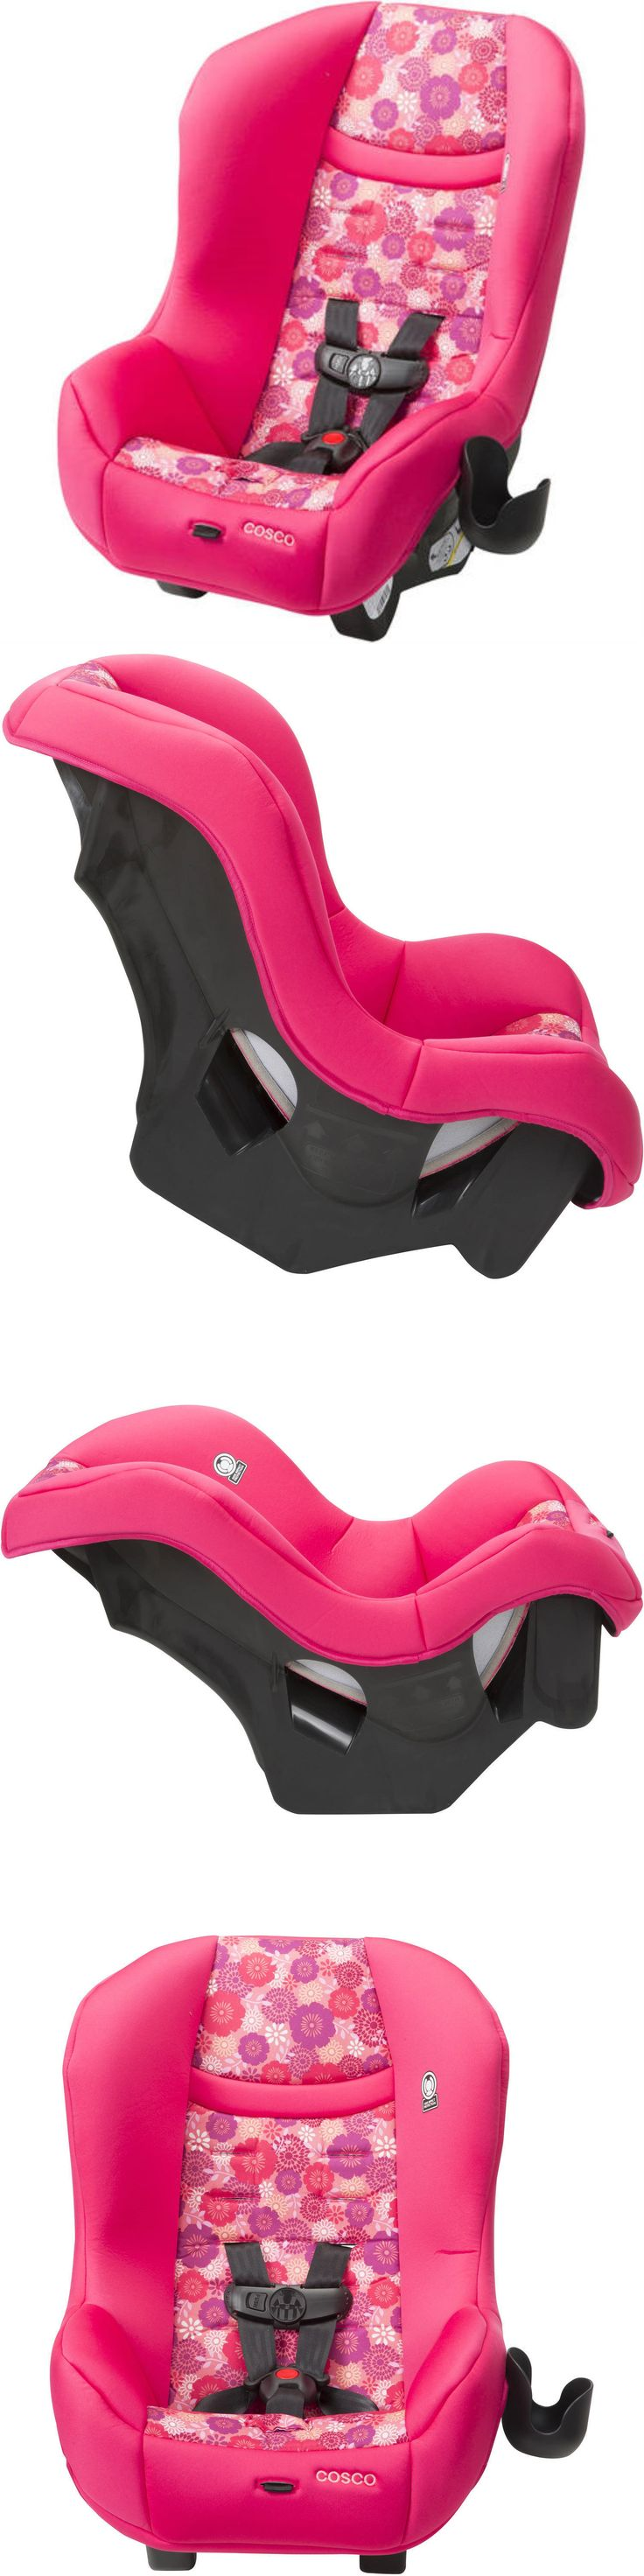 Convertible Car Seat 5-40lbs 66695: Baby Convertible Car Seats Pink Compact Infant Child Toddler -> BUY IT NOW ONLY: $44.7 on eBay!